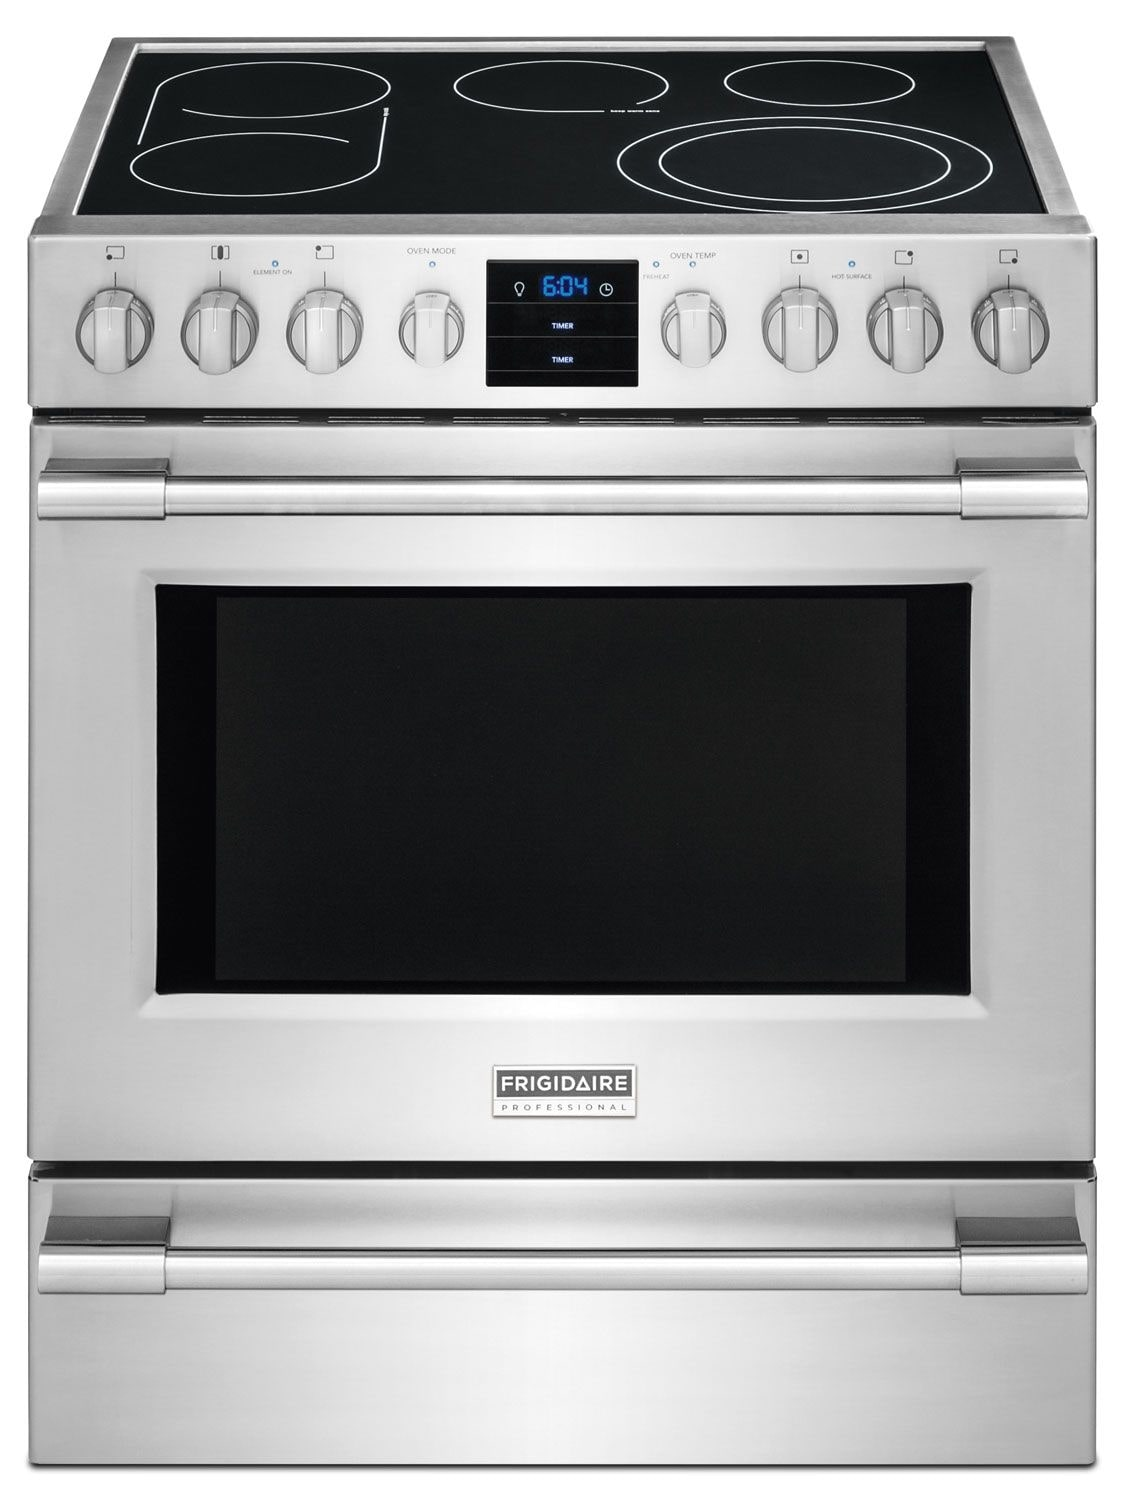 Frigidaire Professional 5.1 Cu. Ft. Slide-In Electric Range - Stainless Steel